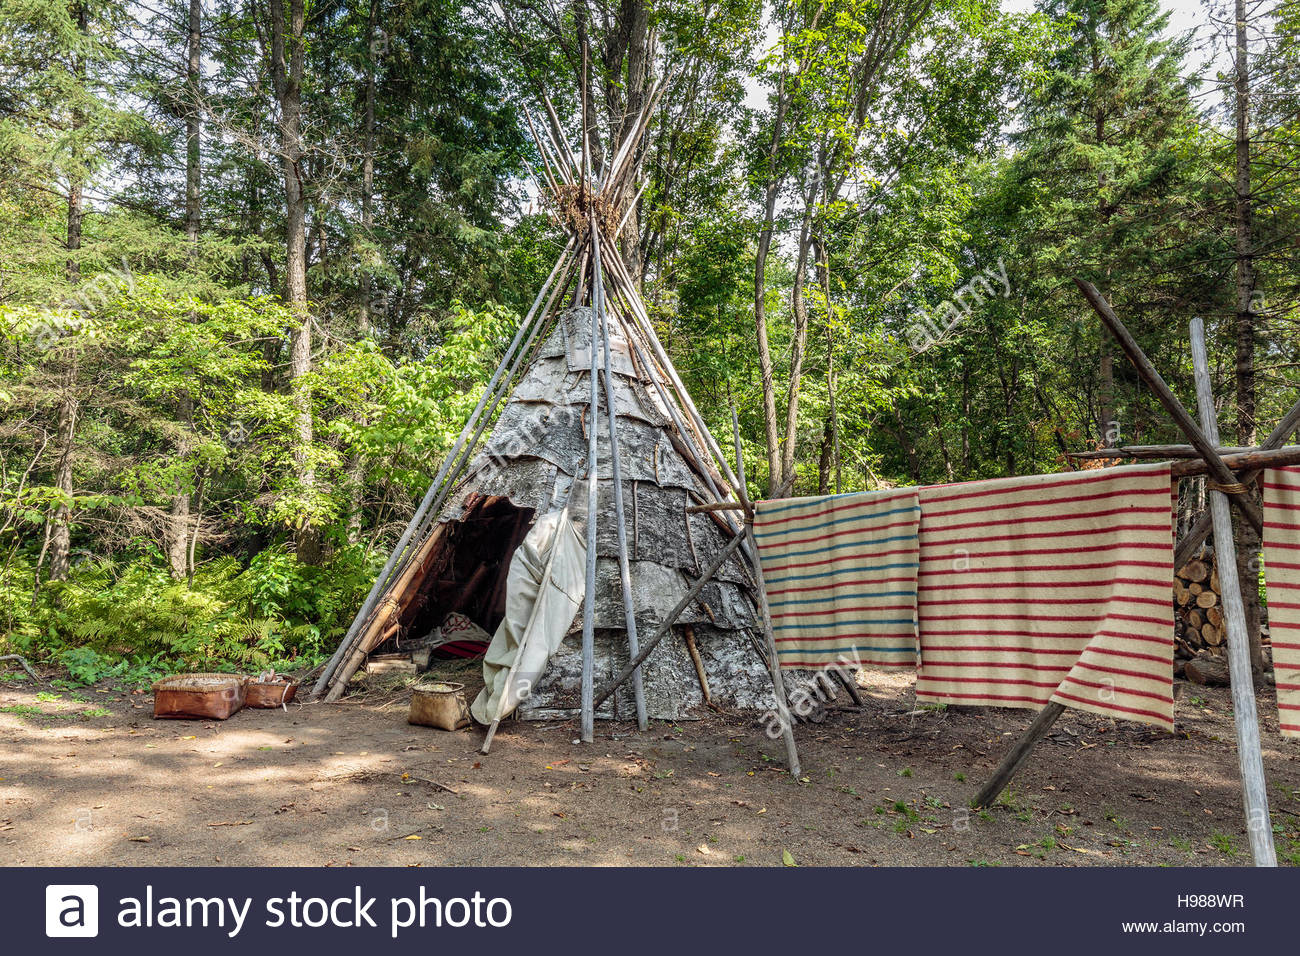 Native encampment of the Ojibwa or Cree people, Fort William National Historic Site, Thunder Bay, Ontario, Canada. - Stock Image